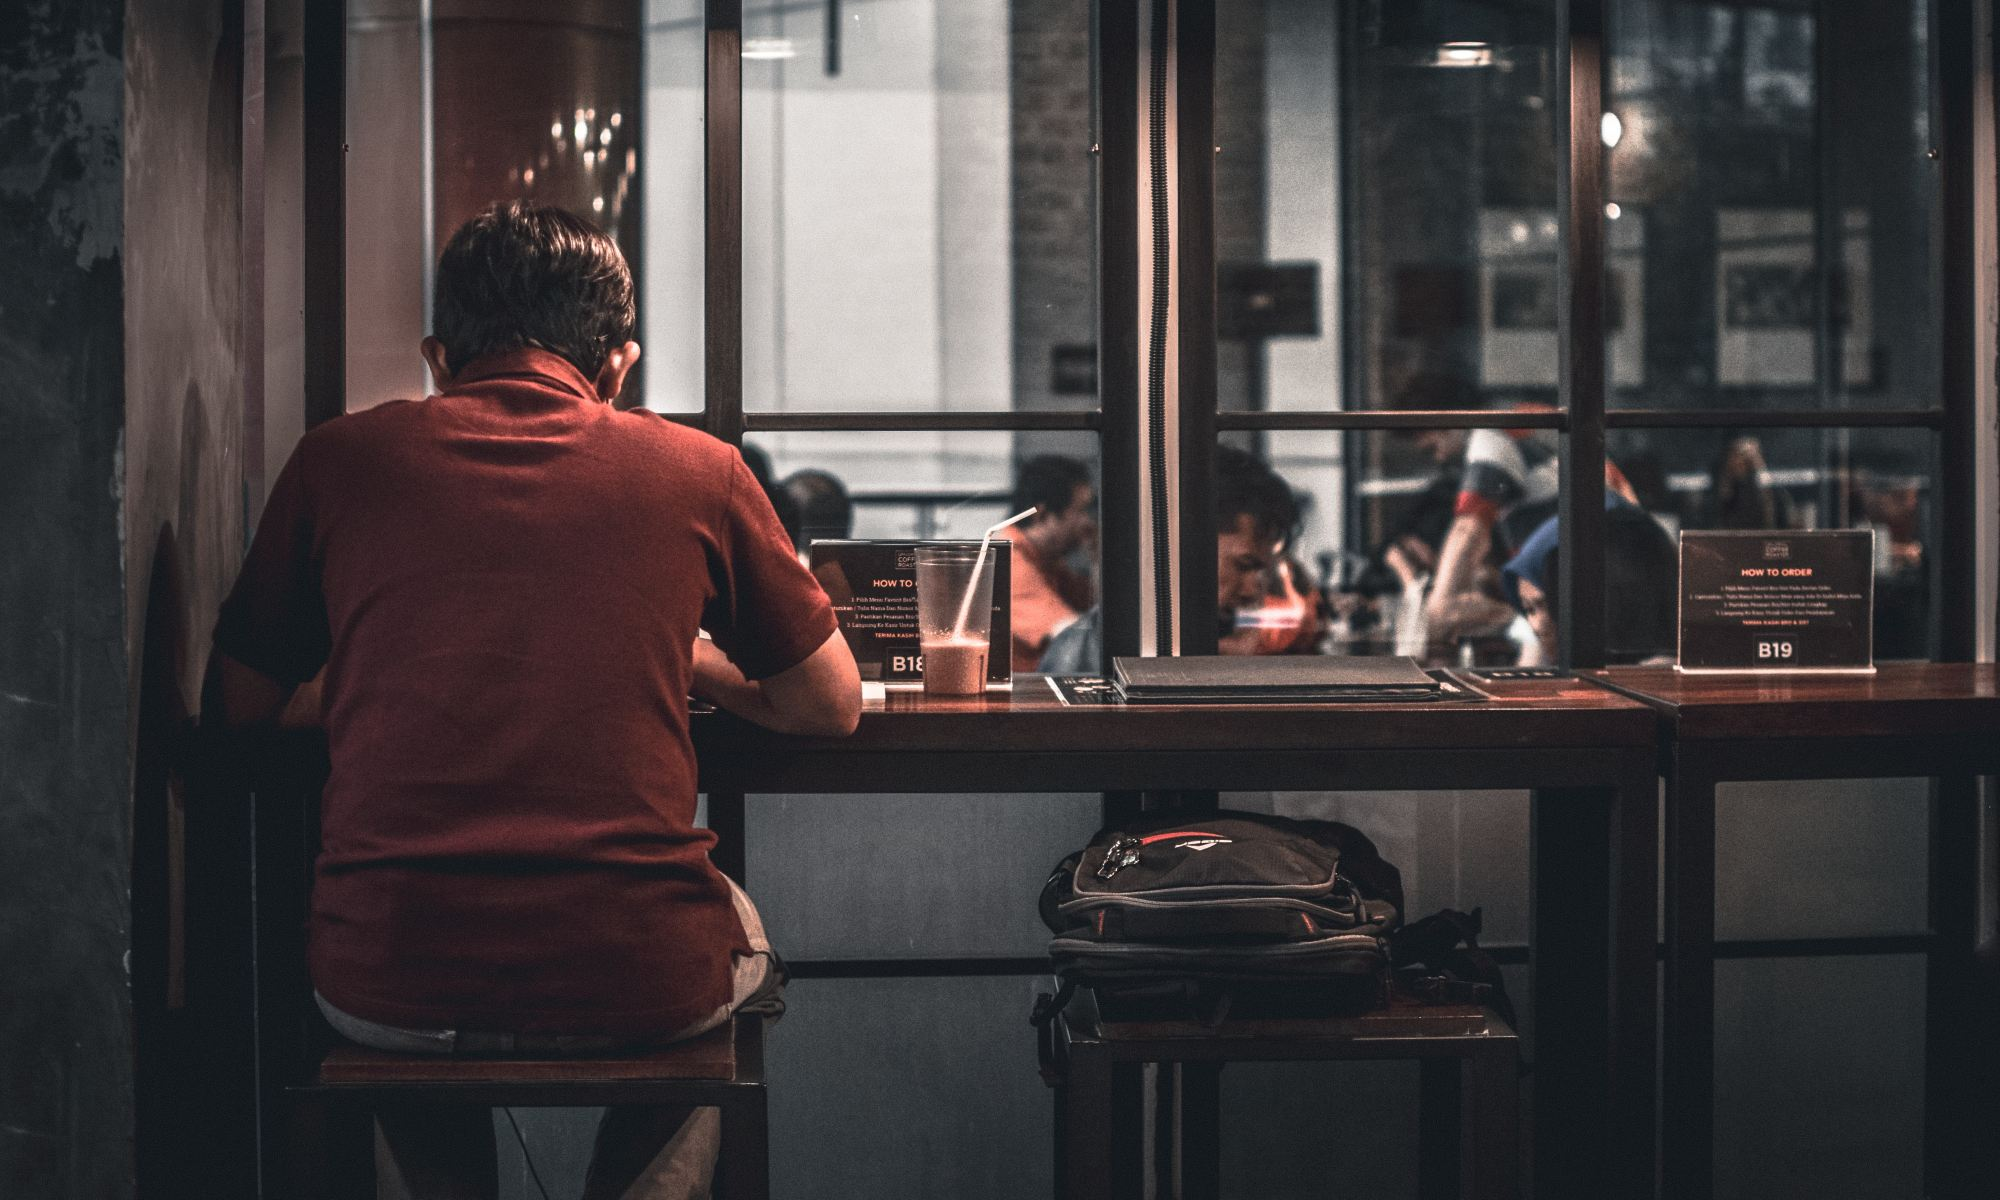 Lonely young man sitting alone on brown wooden bar stool